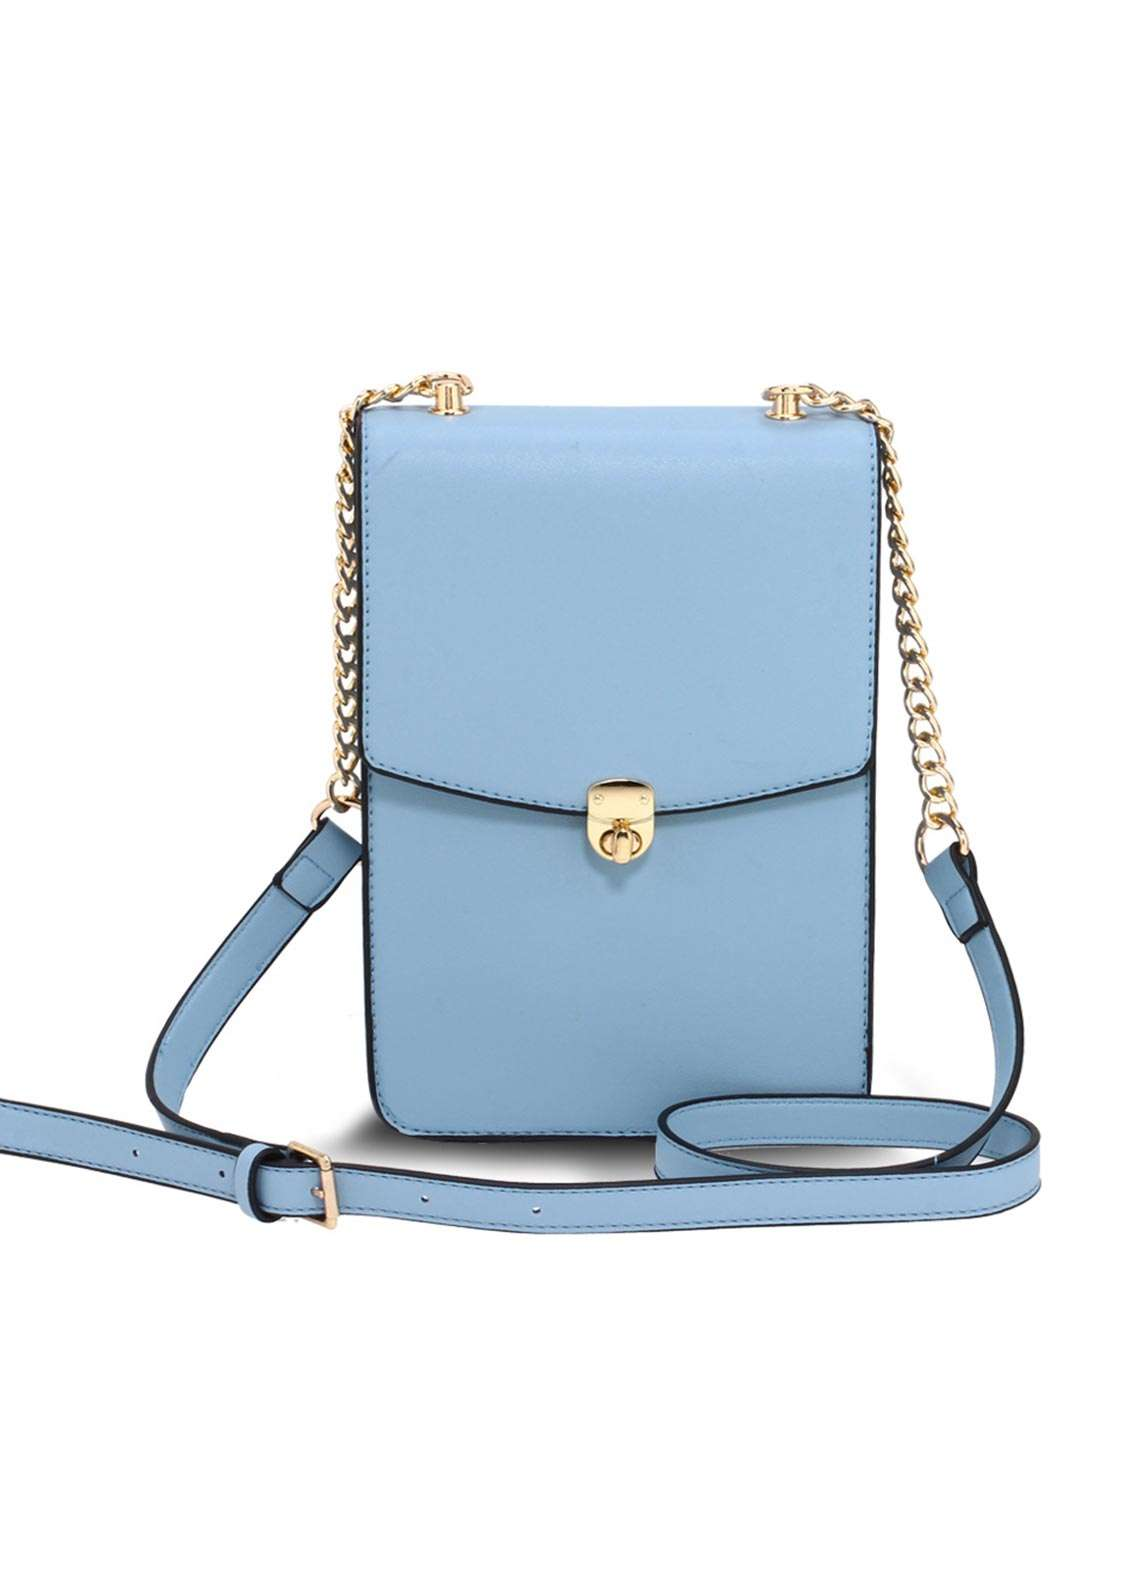 Anna Grace London Faux Leather Crossbody  Bags  for Women  Blue with Smooth Texture